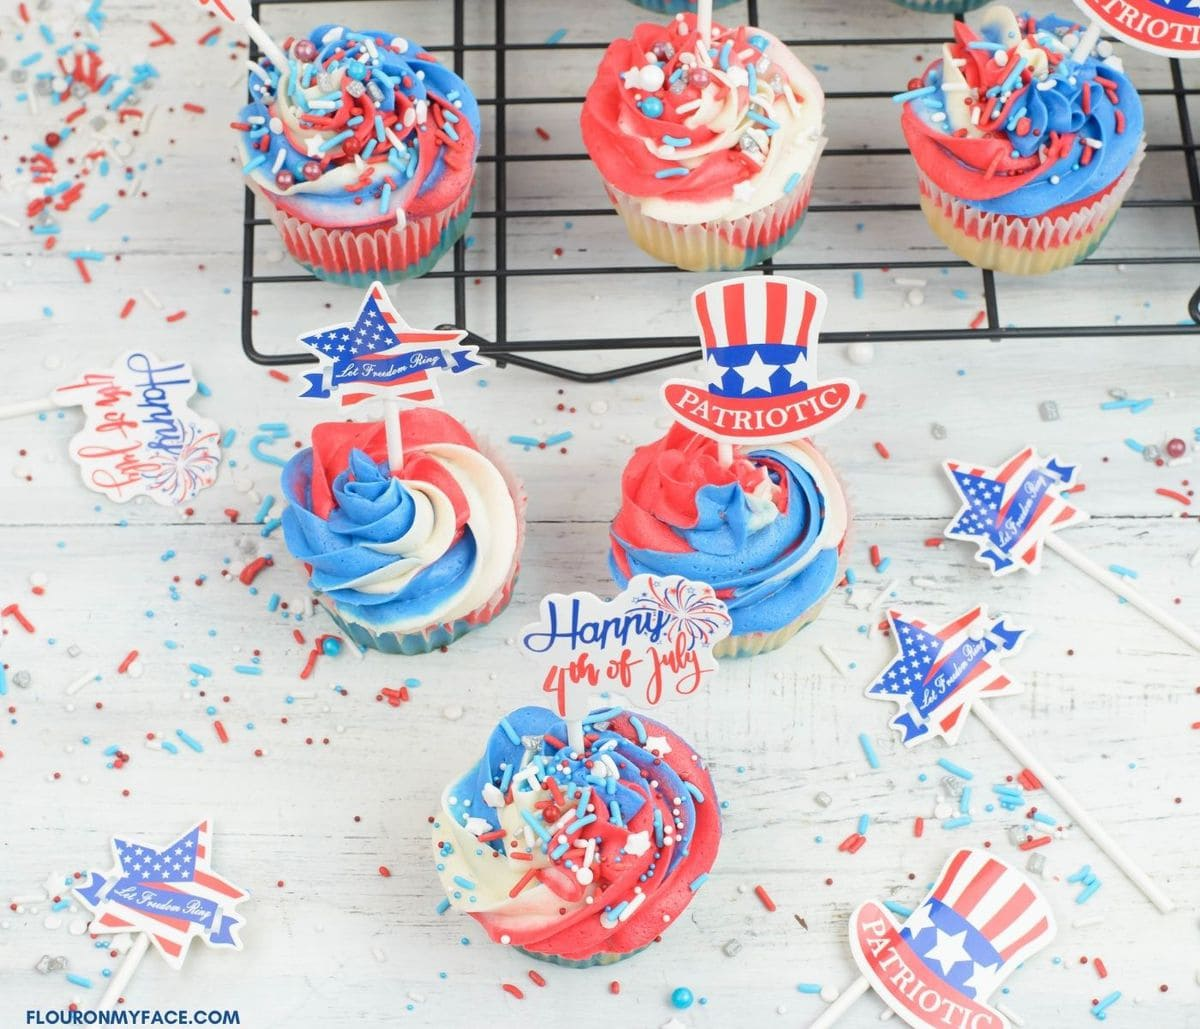 Red, white and blue cupcakes decorated with sprinkles.